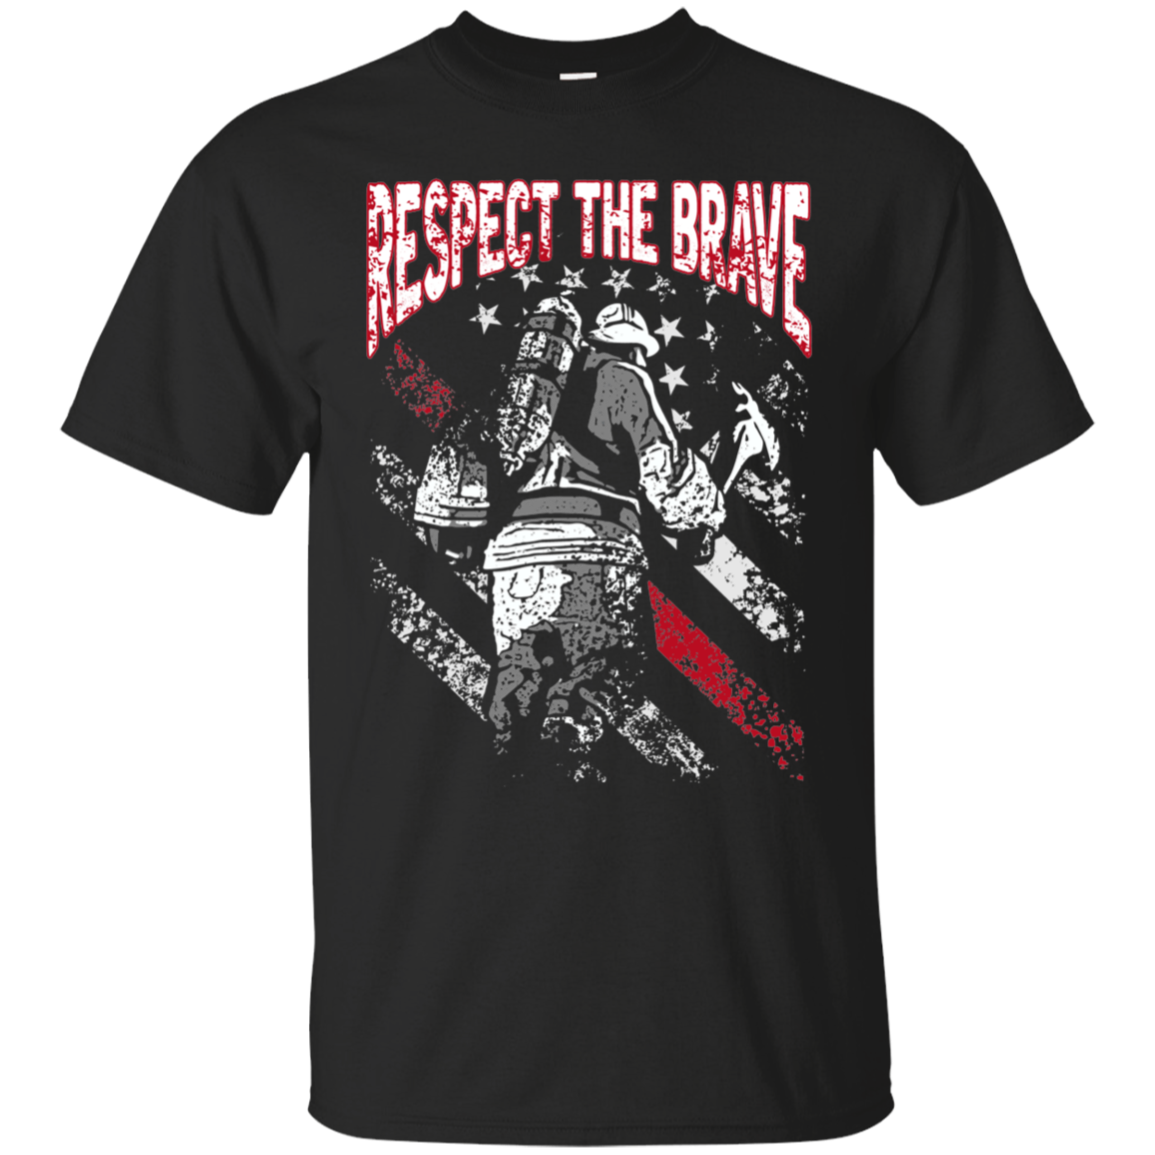 Respect The Brave Cotton T-Shirt